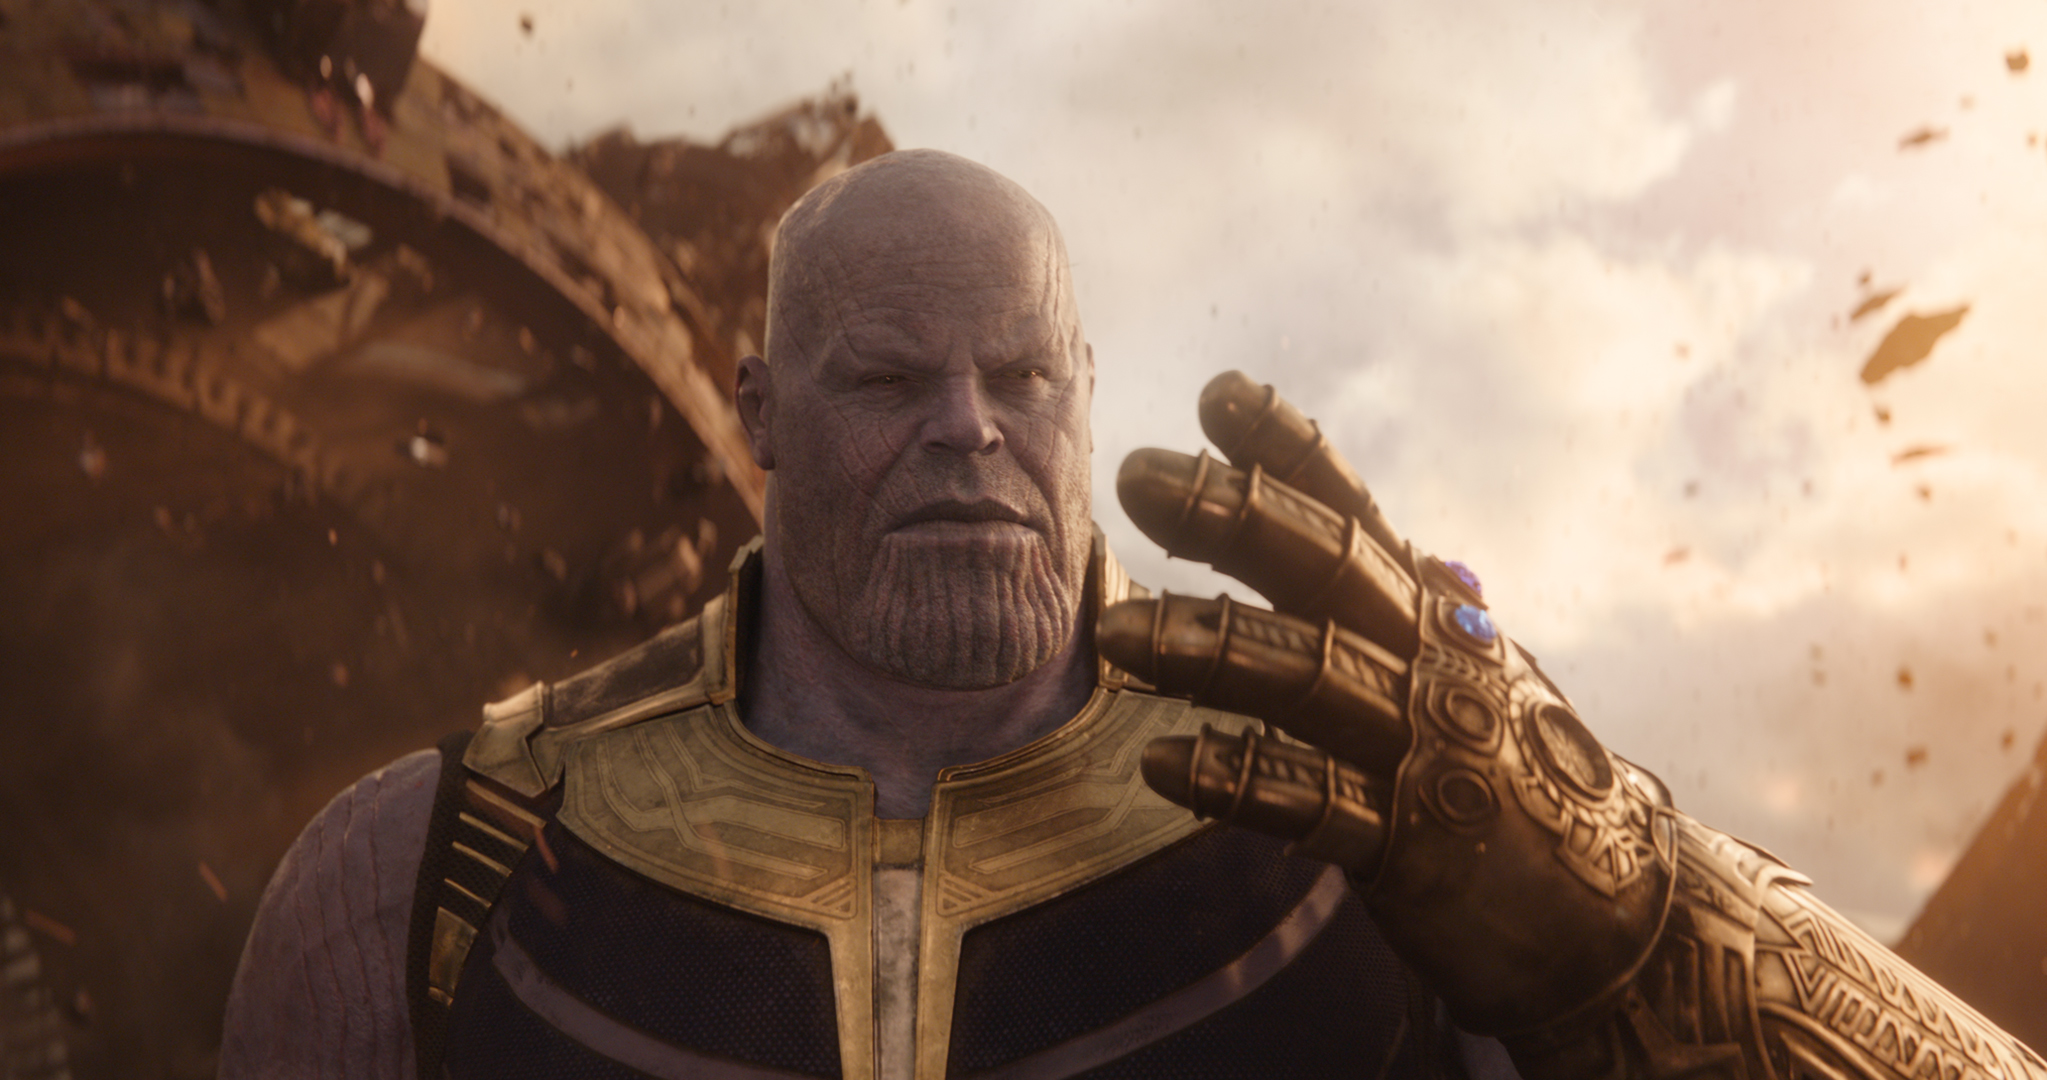 thanos avengers infinity war 2018, hd movies, 4k wallpapers, images